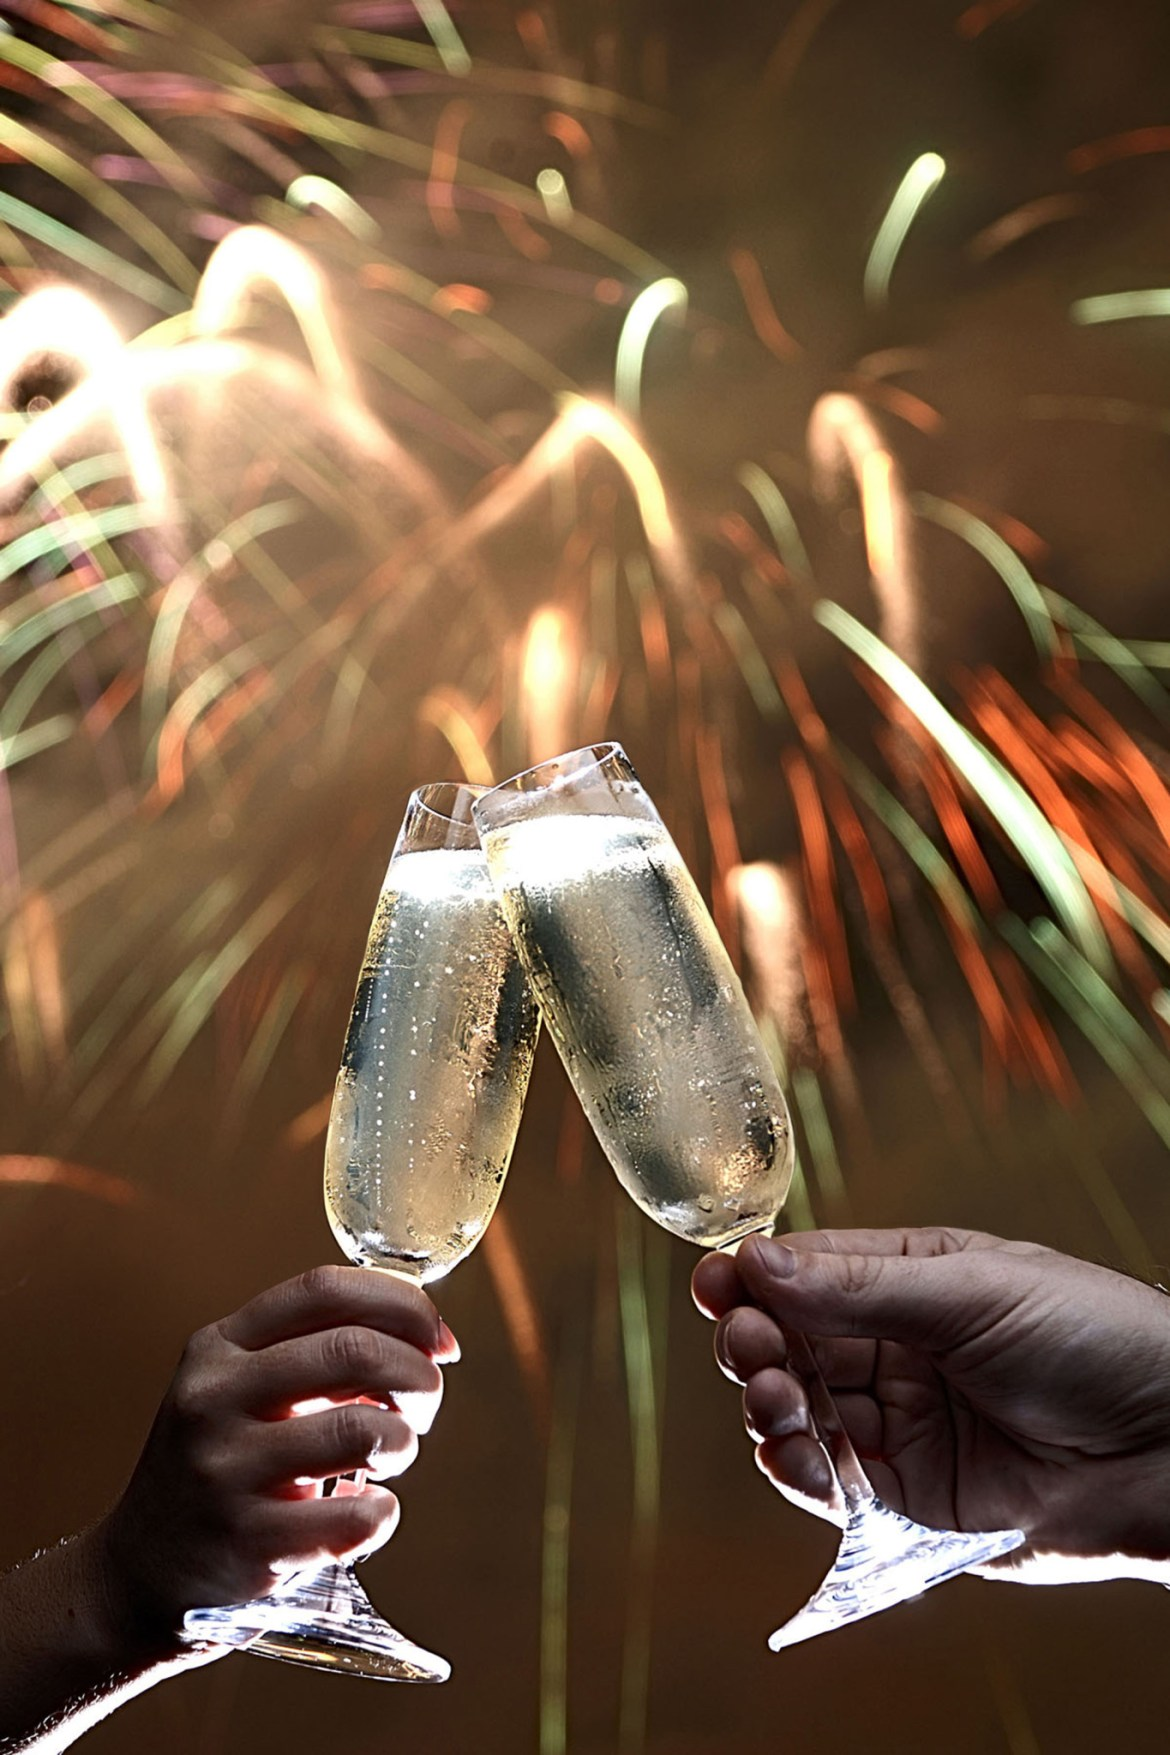 Making Plans for New Year's Eve at Walt Disney World Resort